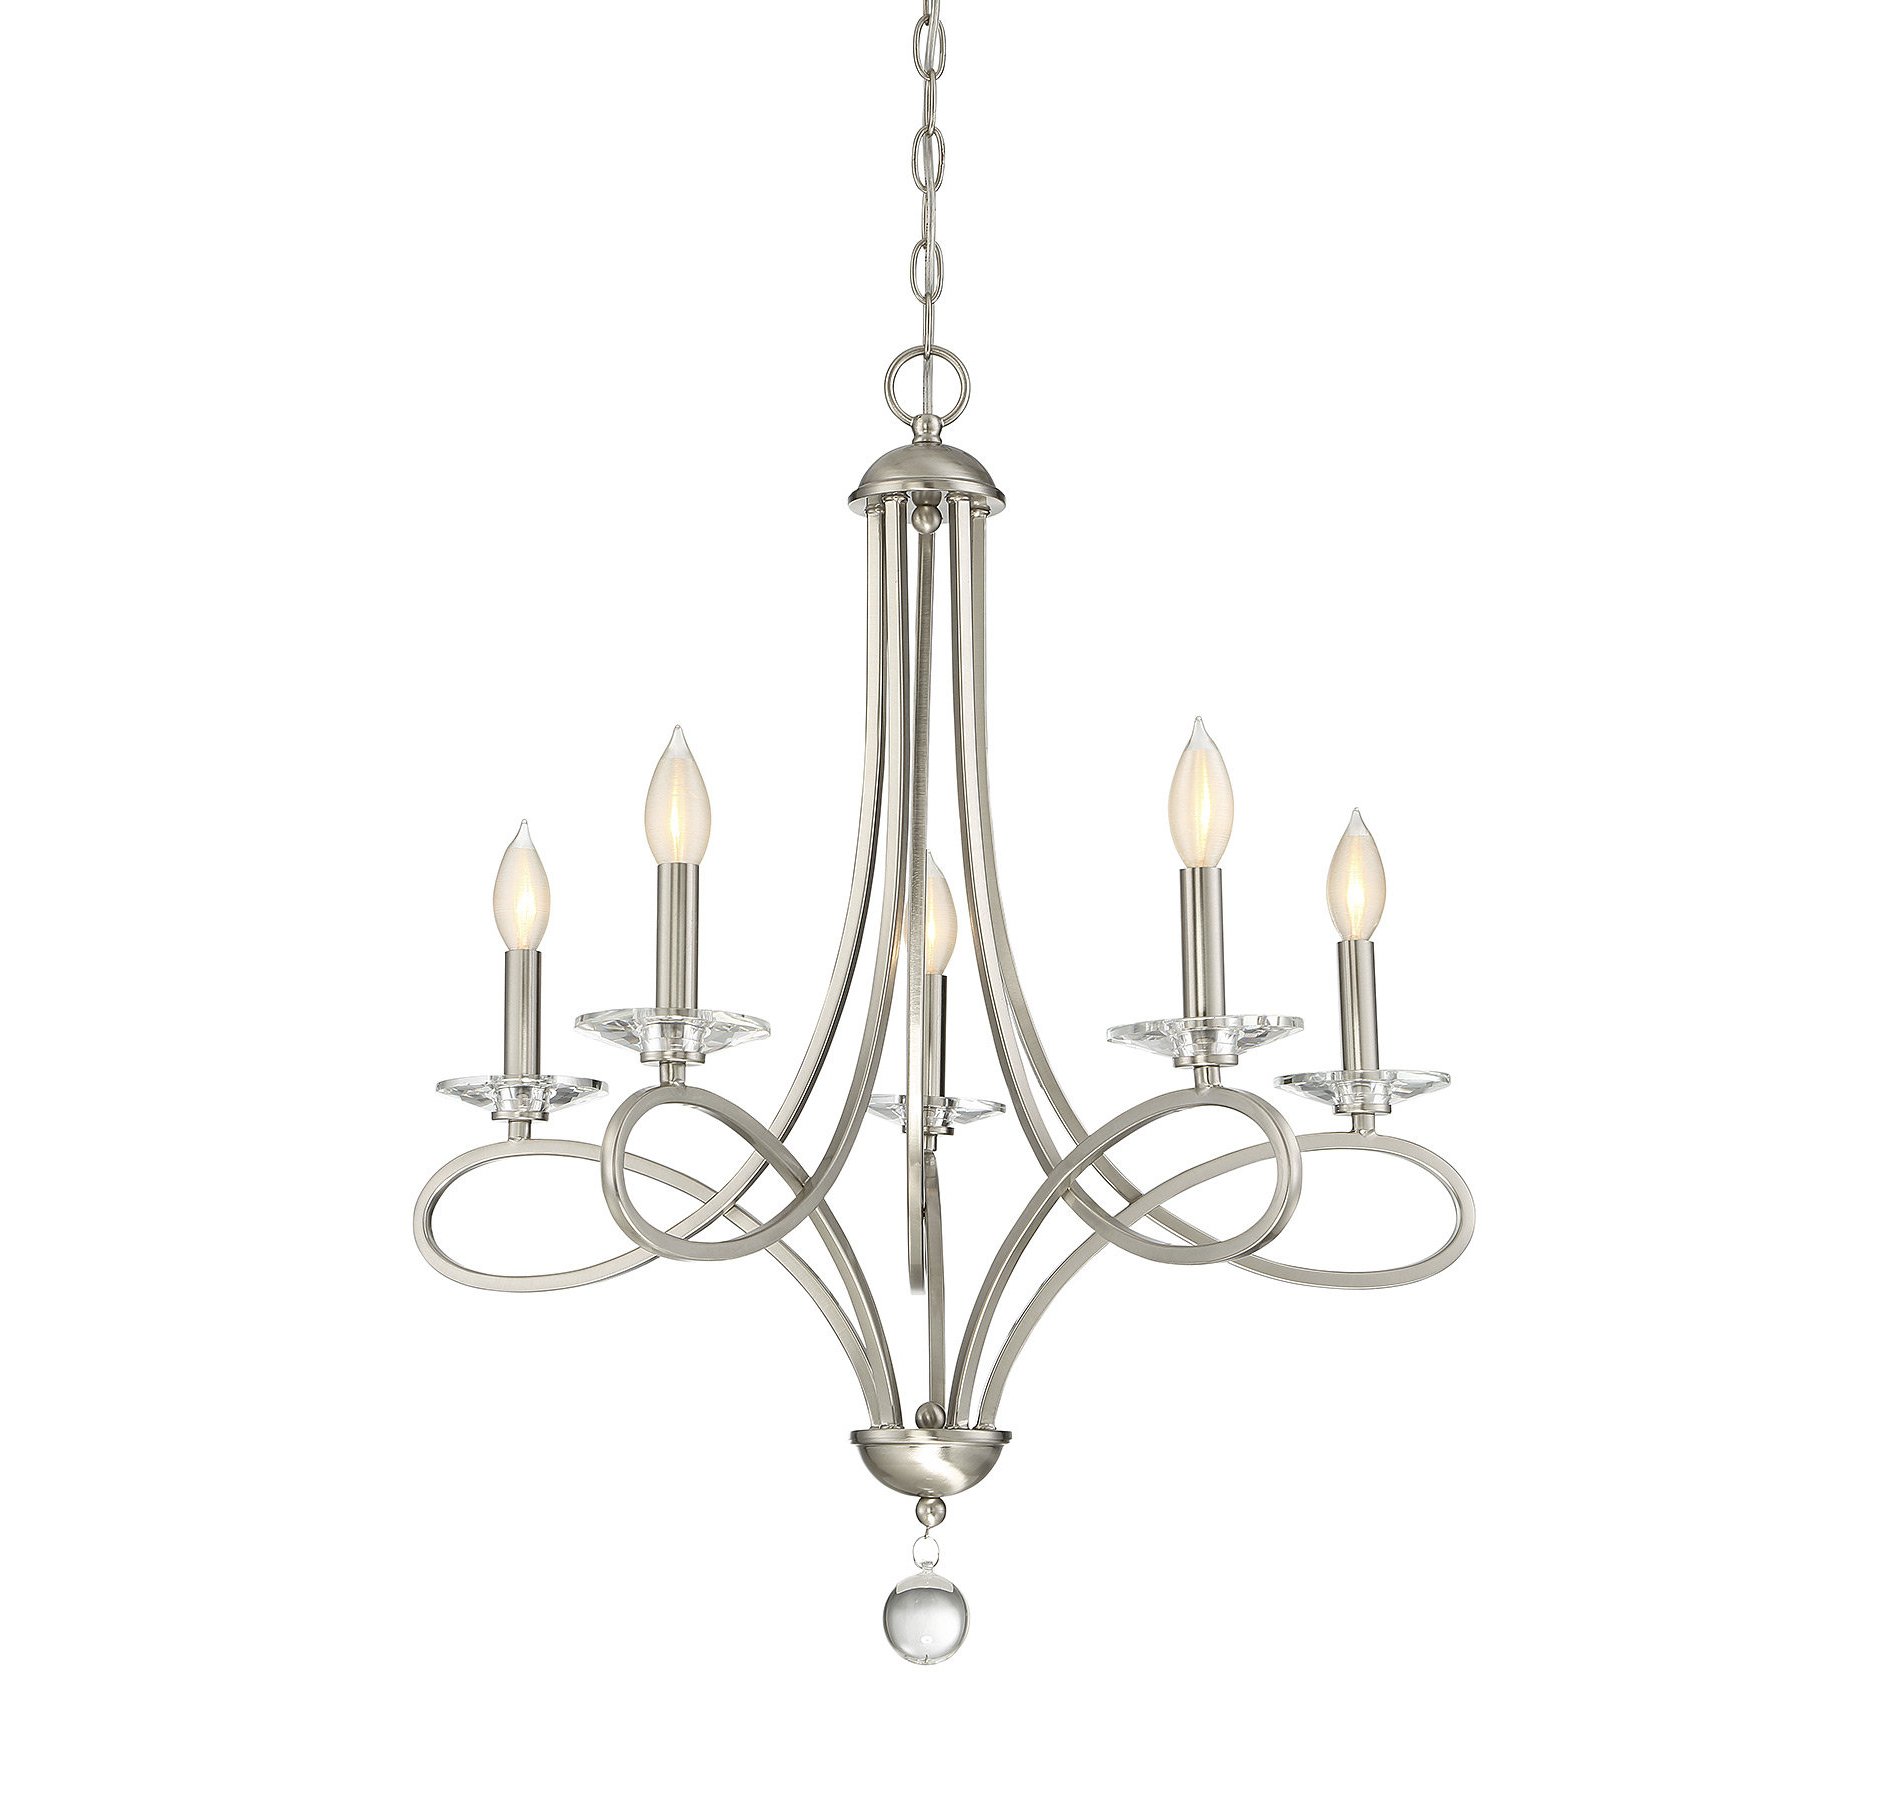 Hesse 5 Light Candle-Style Chandeliers within Most Up-to-Date Willa Arlo Interiors Berger 5-Light Candle Style Chandelier